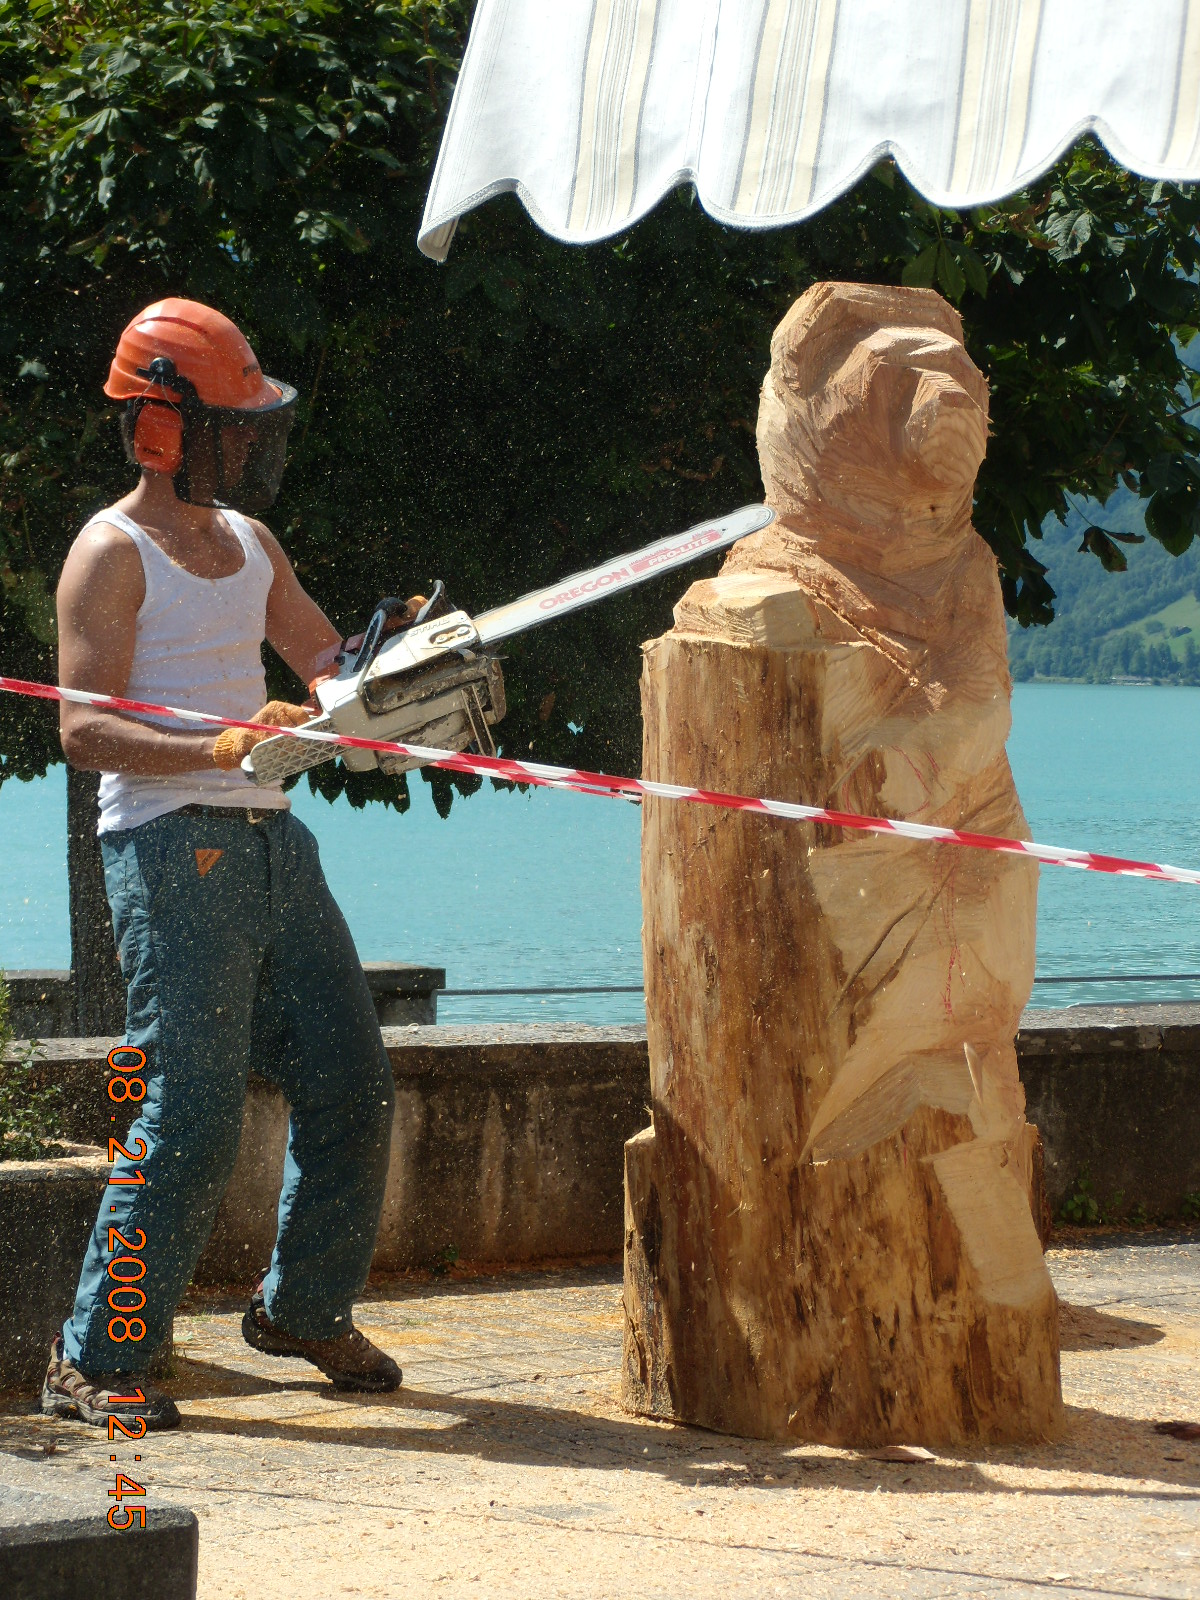 Chainsaw carving of tiger climbing down rocks u time lapse video